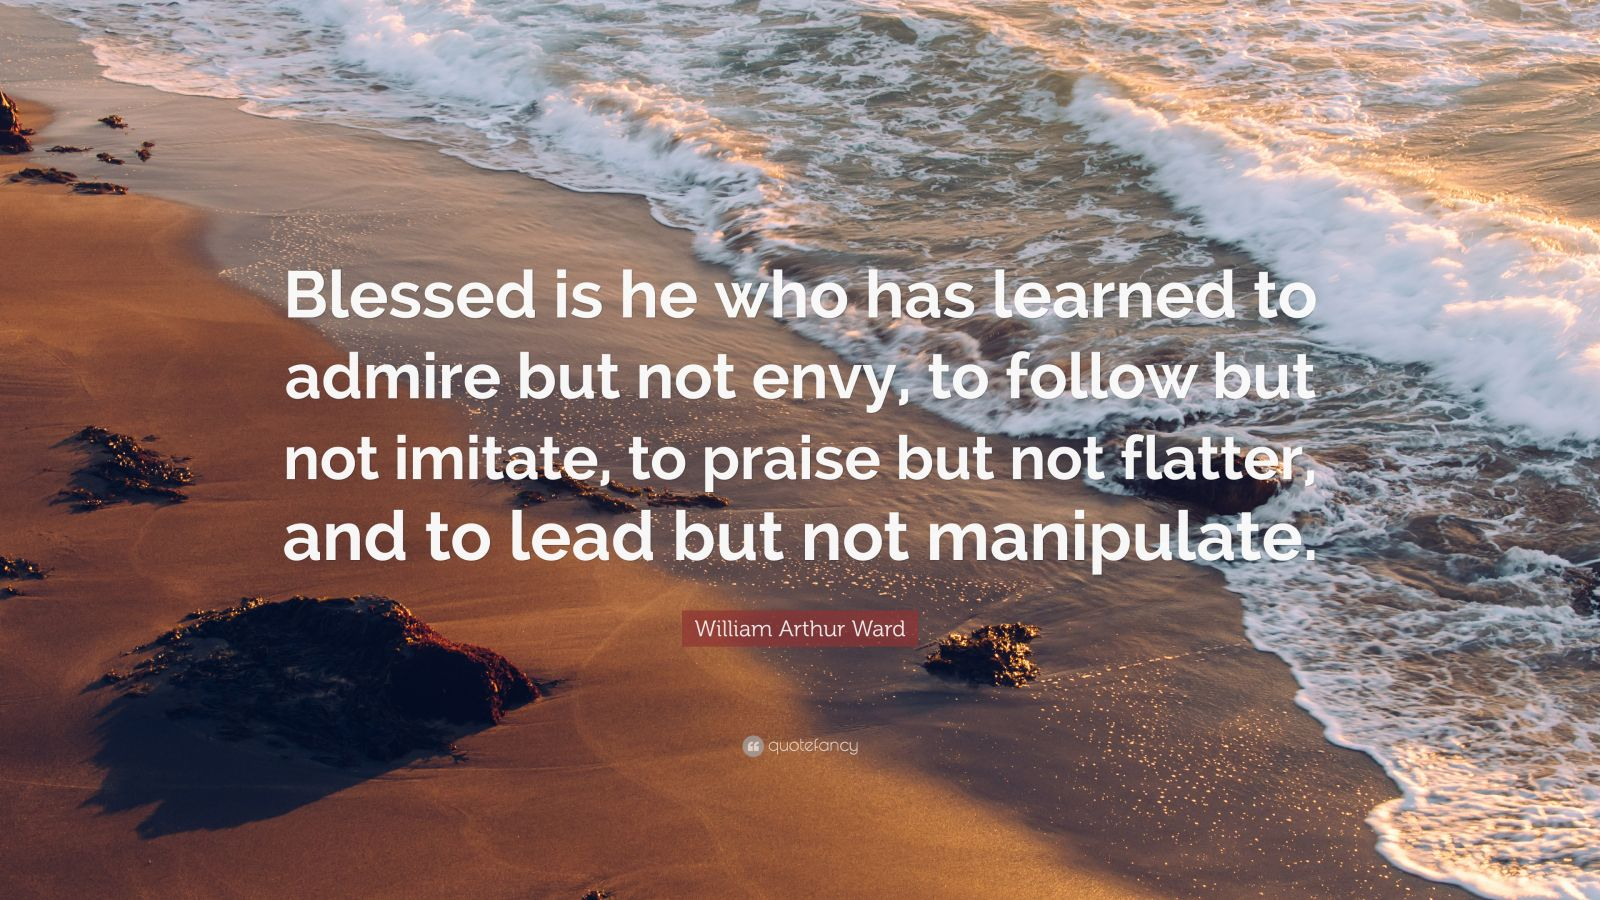 """William Arthur Ward Quote: """"Blessed is he who has learned to admire but not envy, to follow but not imitate, to praise but not flatter, and to lead but not manipulate."""""""